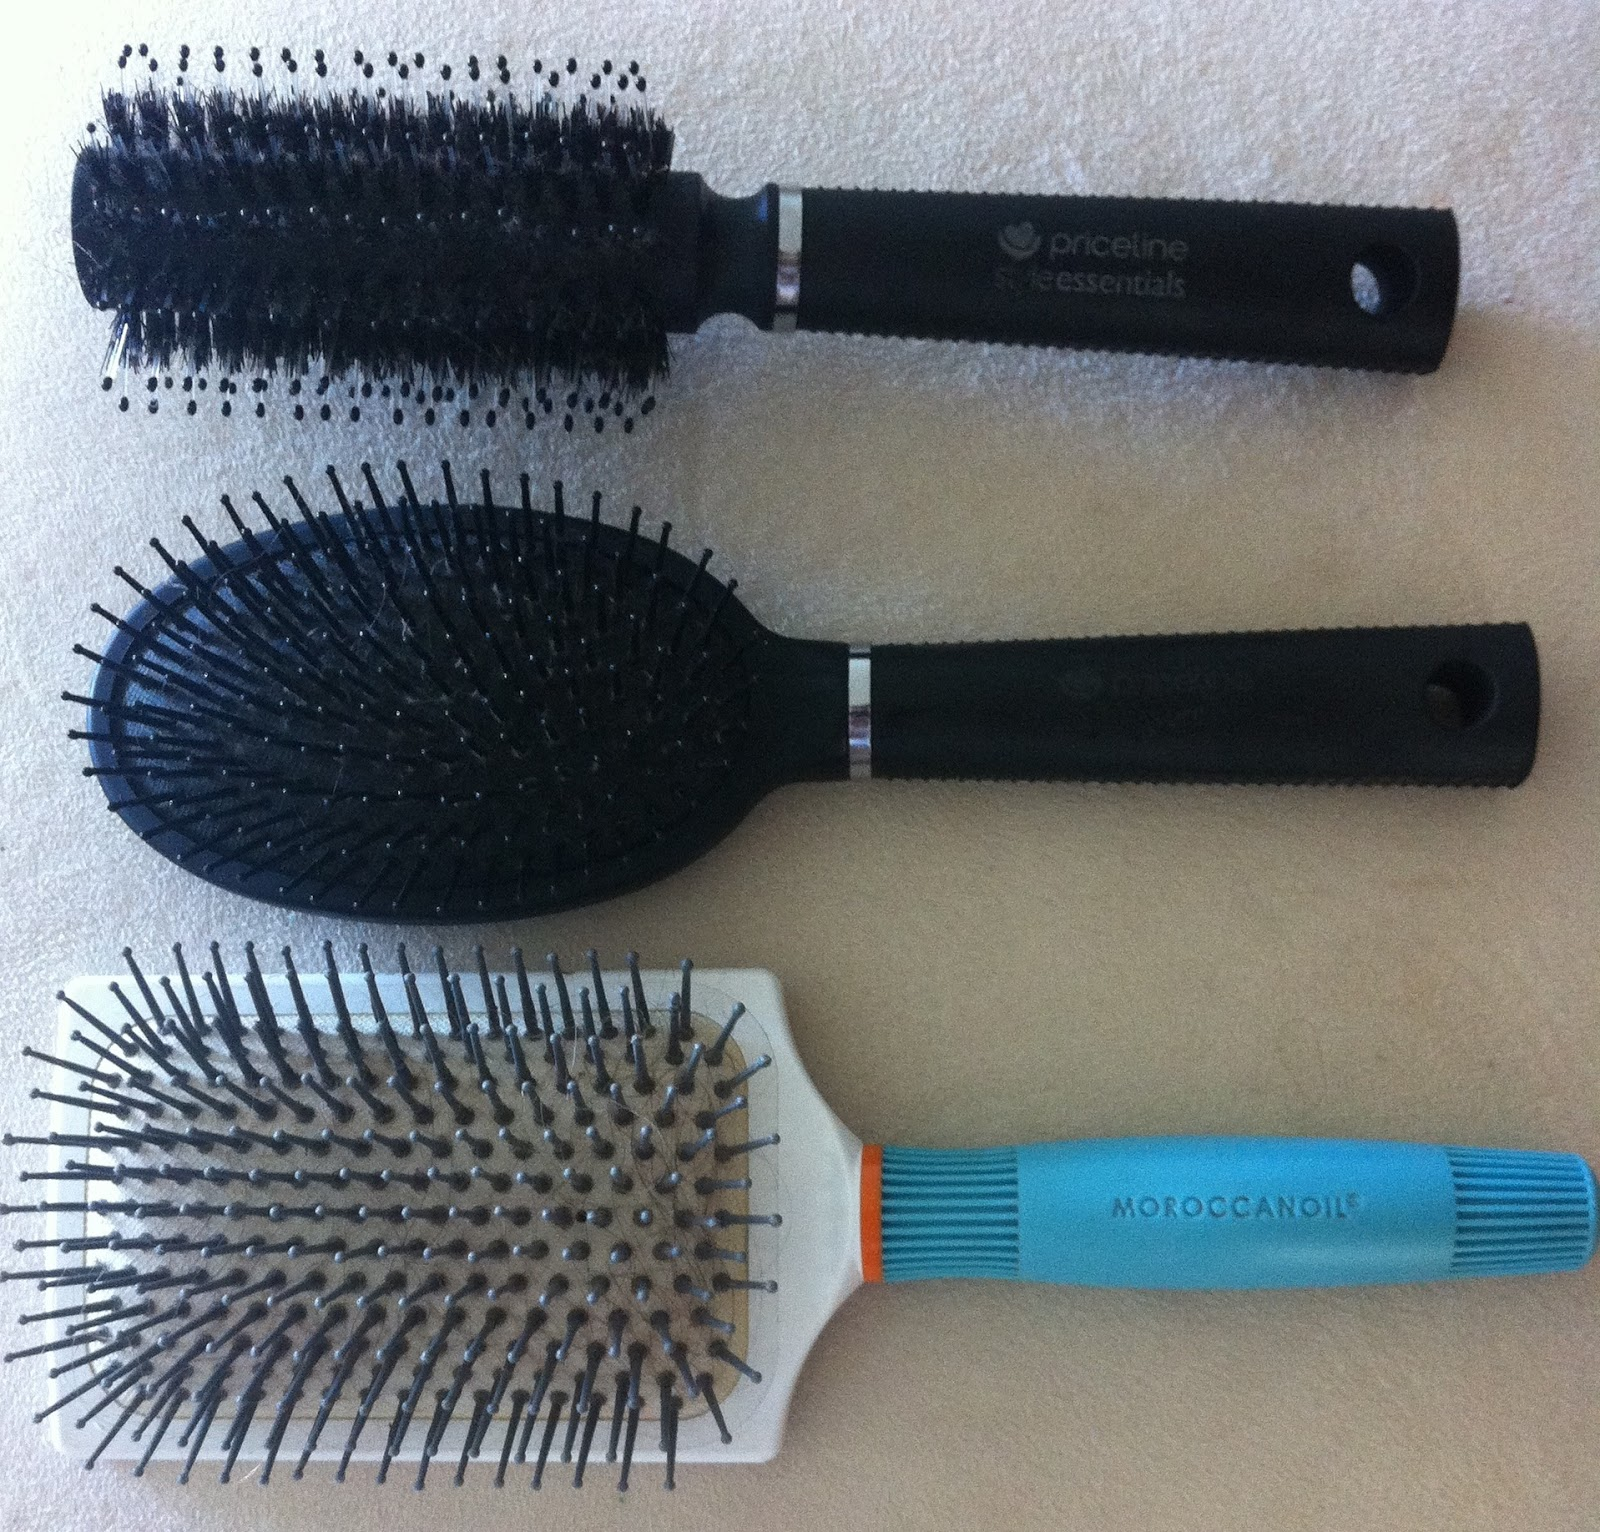 Isnt easy right hair perfecter fusion styler is Best Round Brush Hair ...